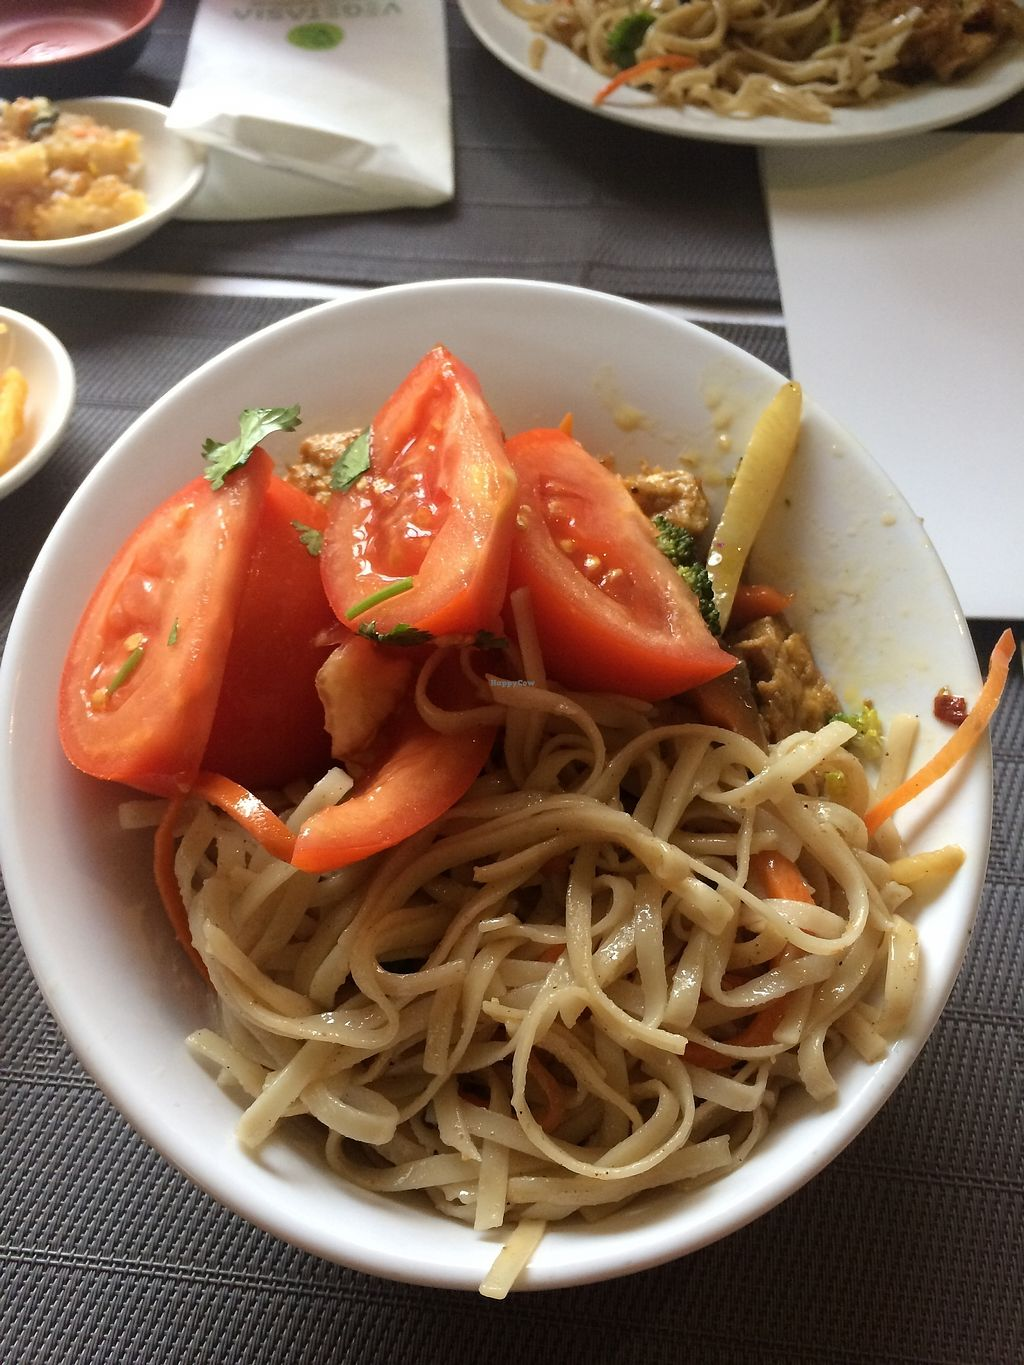 """Photo of Vegetasia  by <a href=""""/members/profile/AnetaB%C3%A1rtov%C3%A1"""">AnetaBártová</a> <br/>First plate - noodles (with great kind of creamy sauce), some veggies and under all of this is tofu, more veggies and potatoes.  <br/> December 31, 2017  - <a href='/contact/abuse/image/579/341287'>Report</a>"""